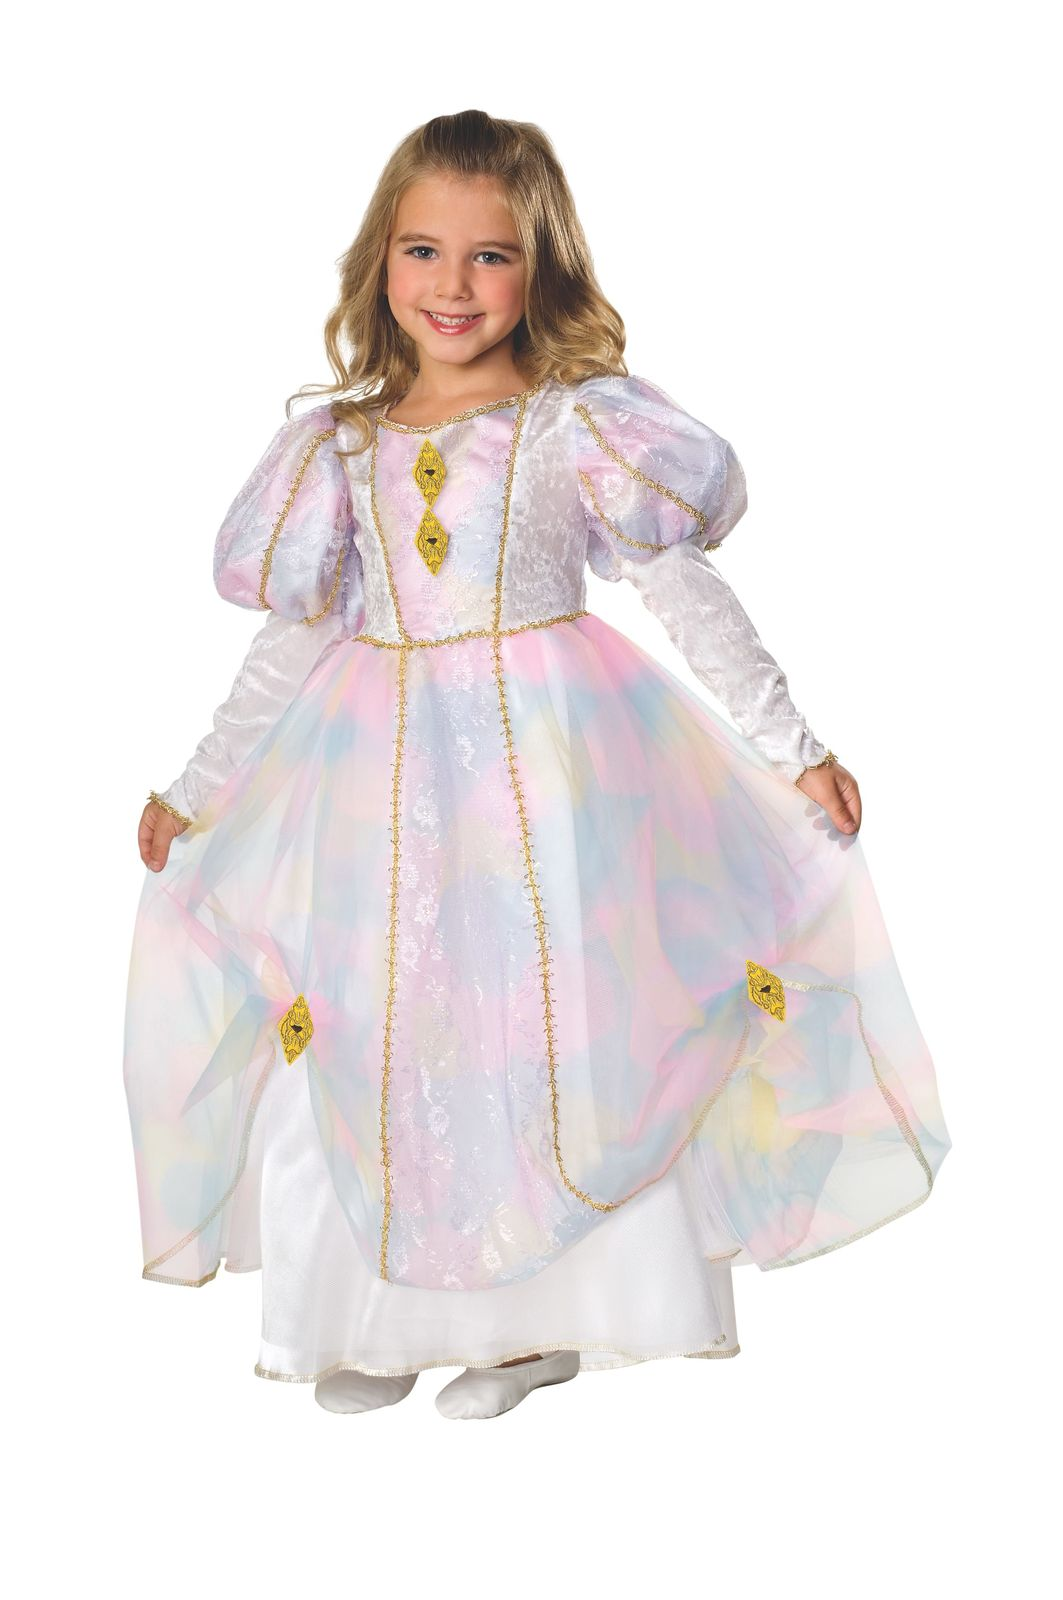 Primary image for Girls Rainbow Princess Halloween Costume Size 5-7 Years